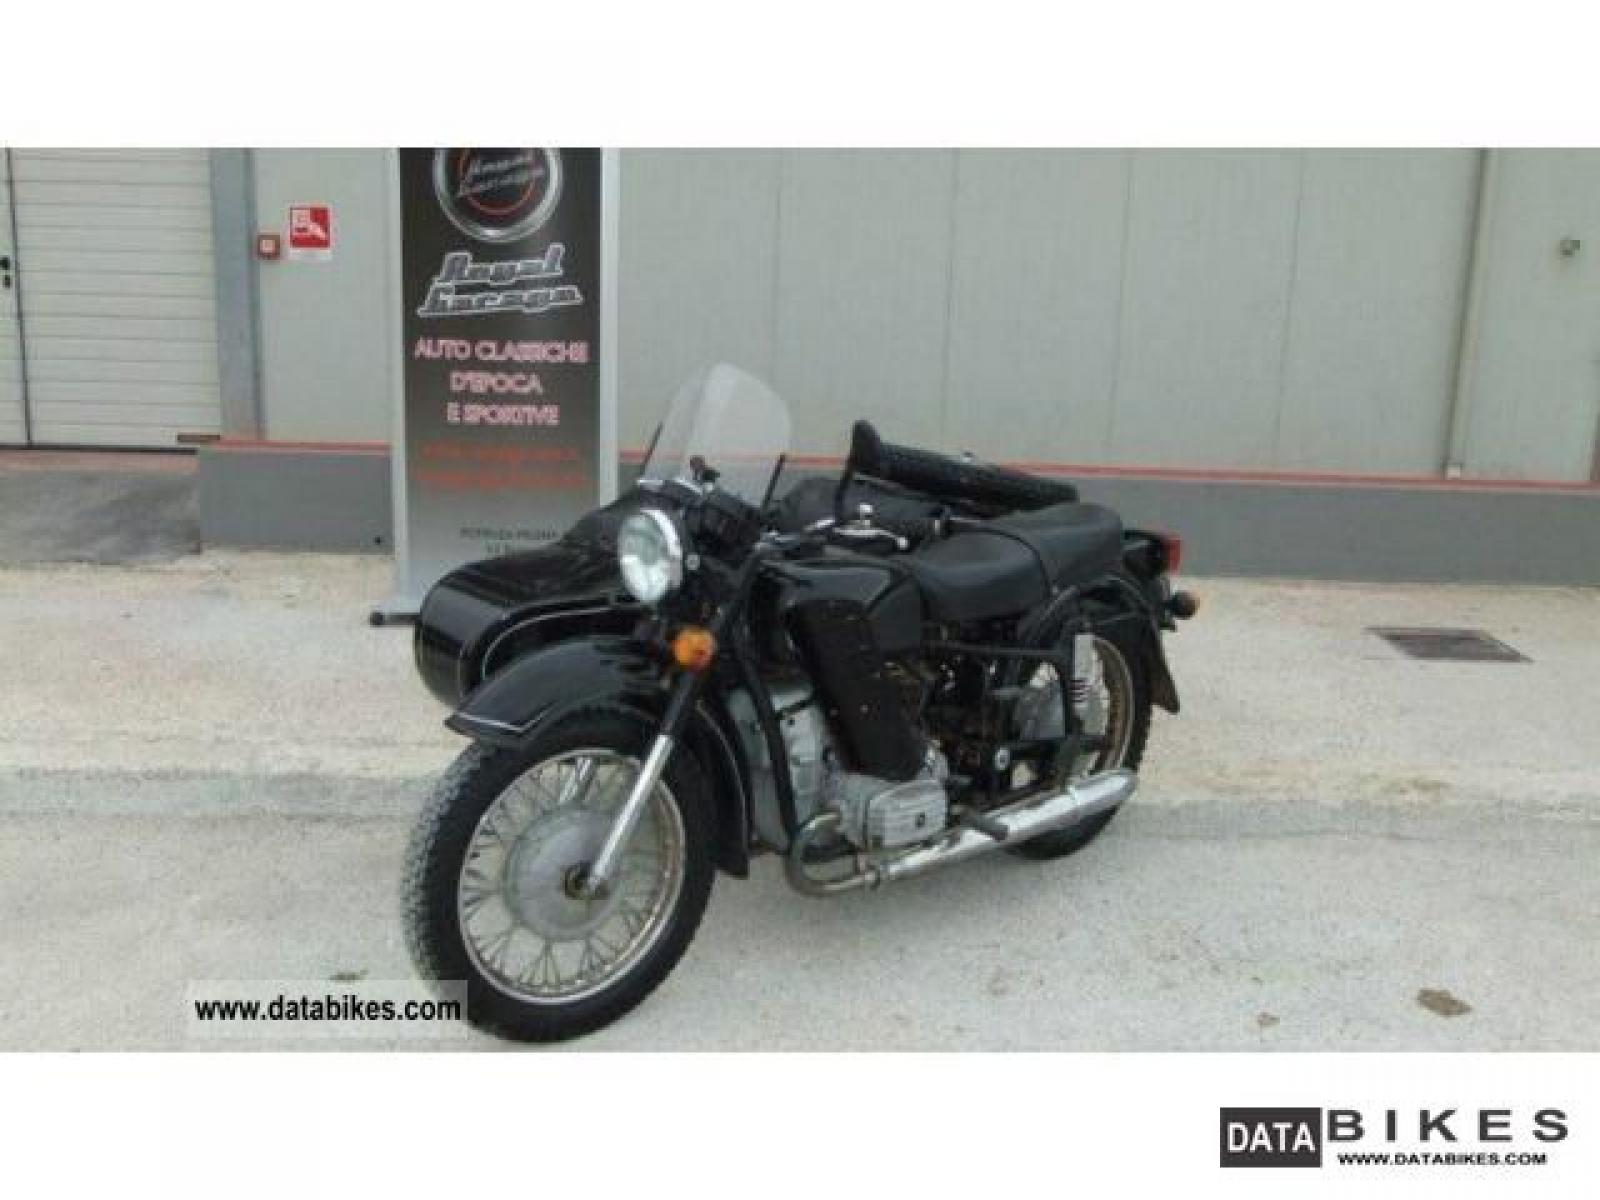 Dnepr MT 10 with sidecar 1985 images #72068